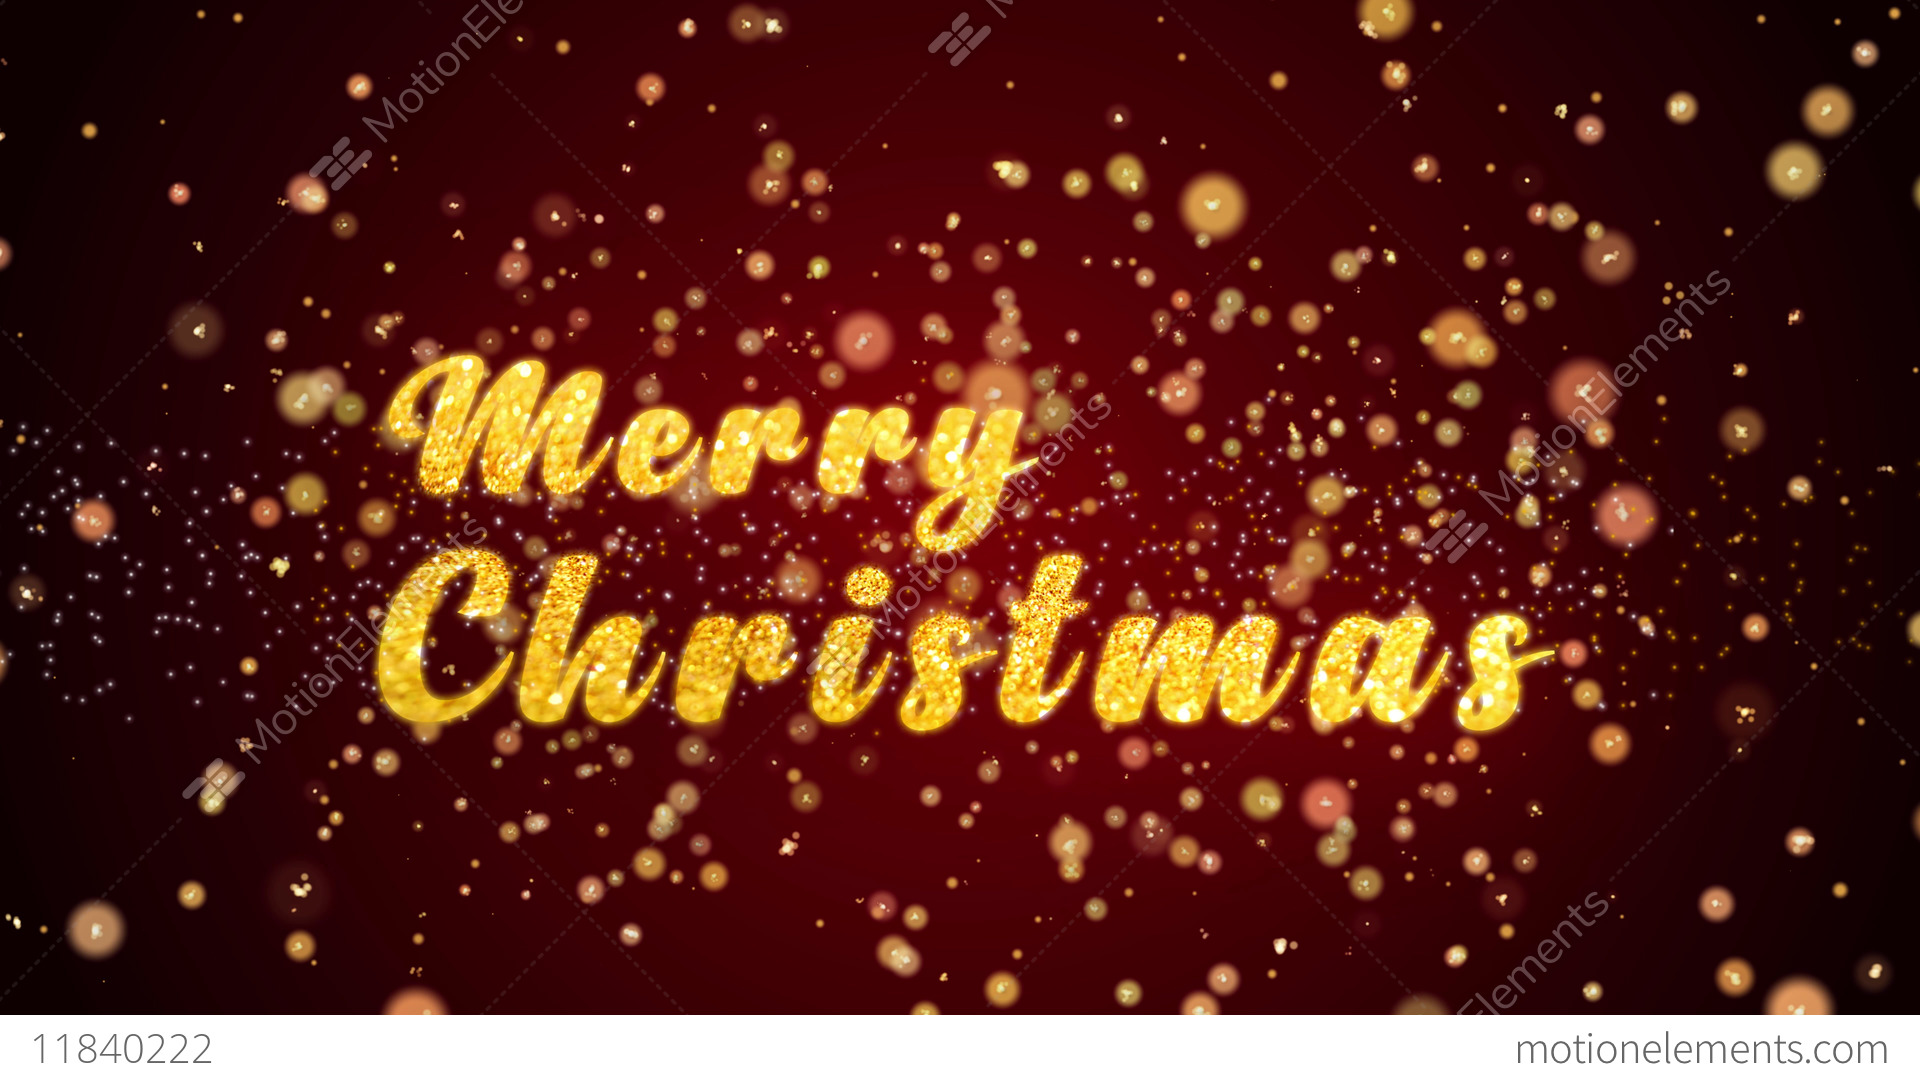 Merry Christmas Greeting Card Text Shiny Particles For Celebration